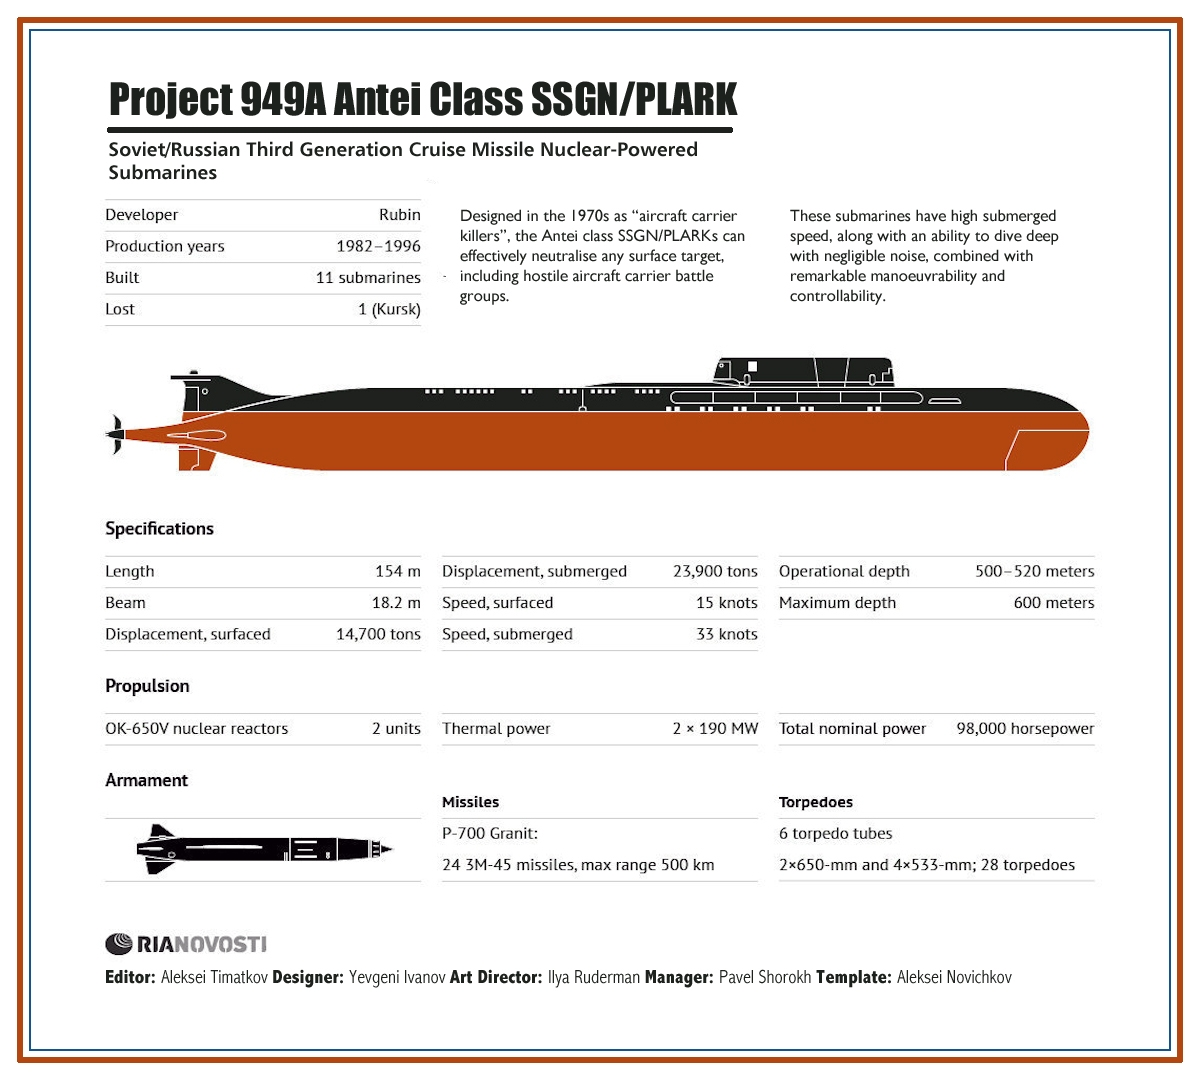 00 RIA-Novosti Infographics. Project 949A Antei Nuclear-Powered Cruise Missile Submarines SSGN PLARK. 2013